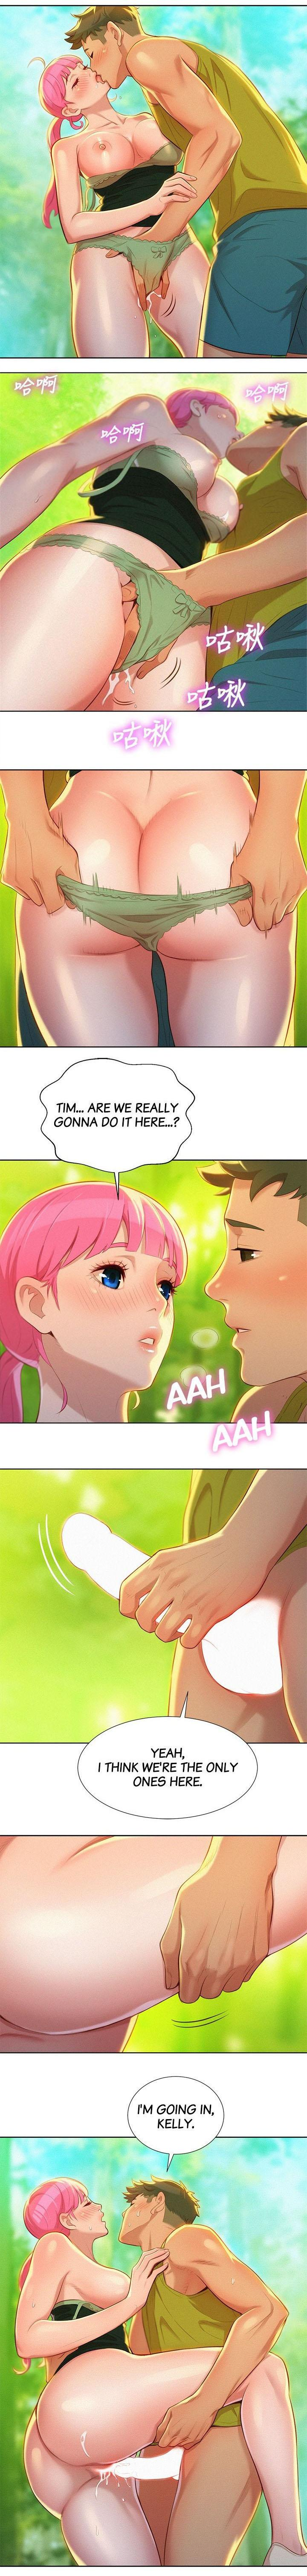 What do you Take me For? Ch.70/? 228